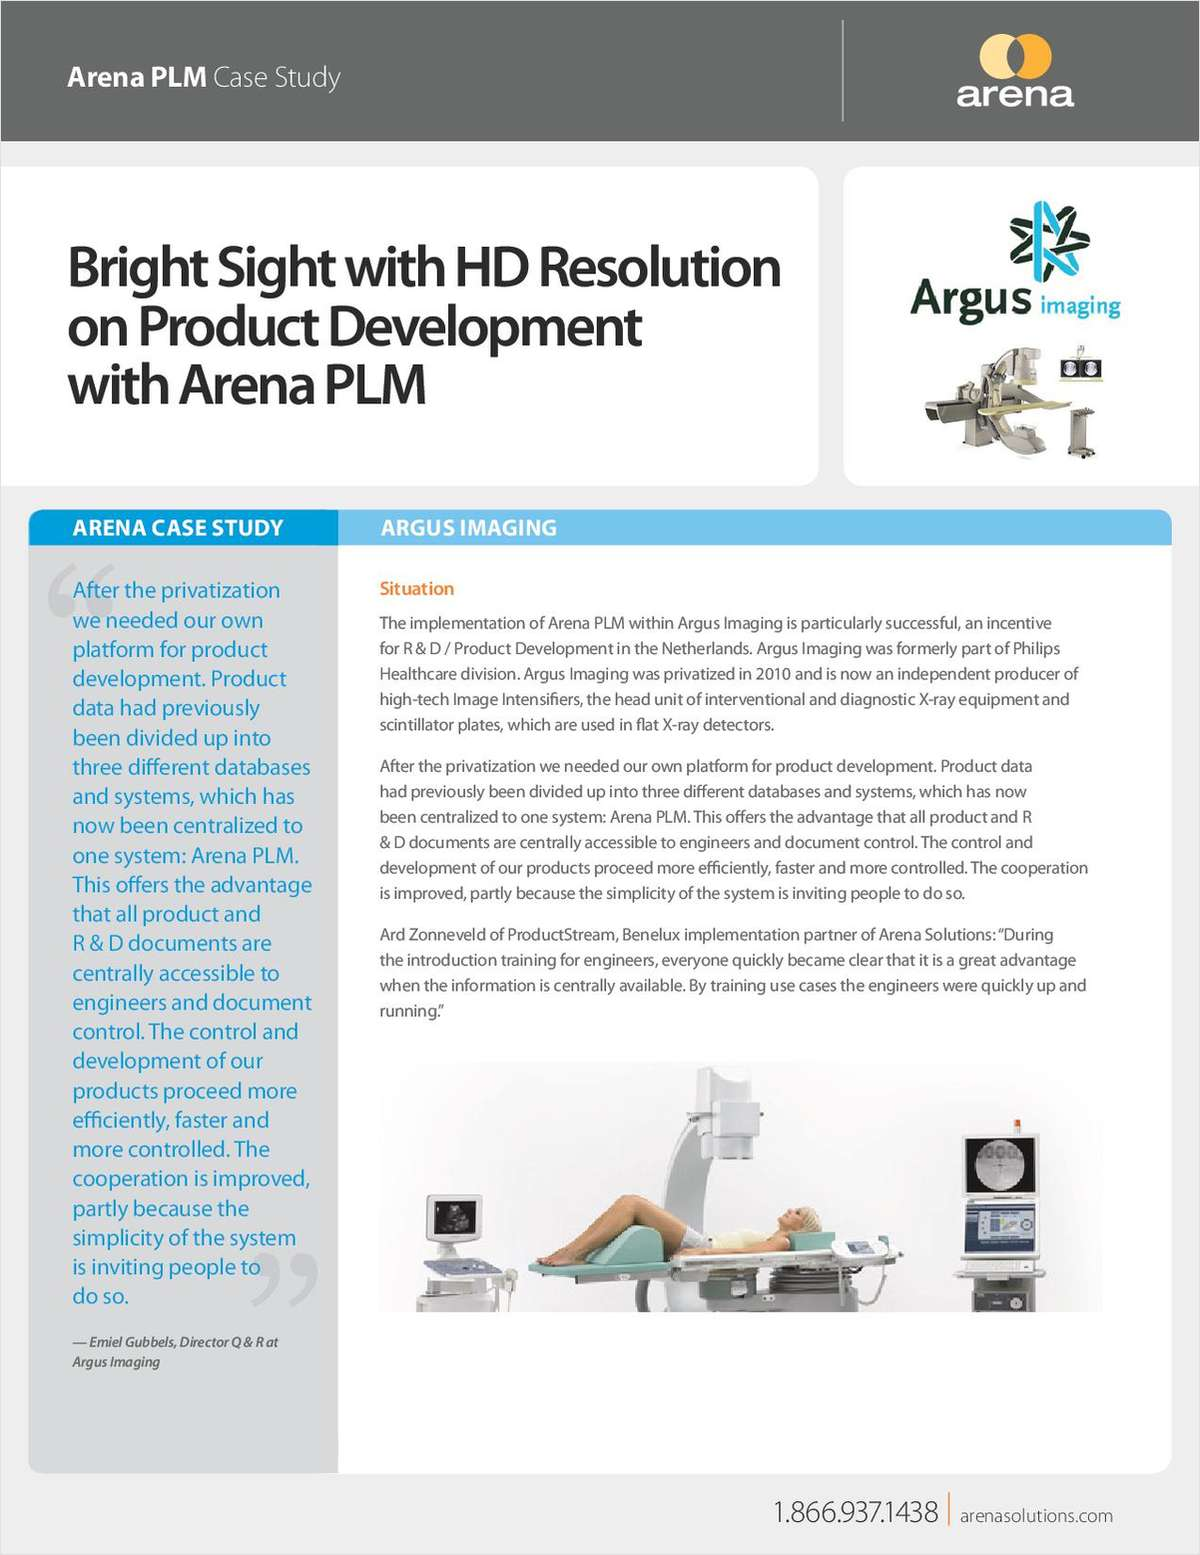 Diagnostic Manufacturer Delivers Great Products Using Arena PLM